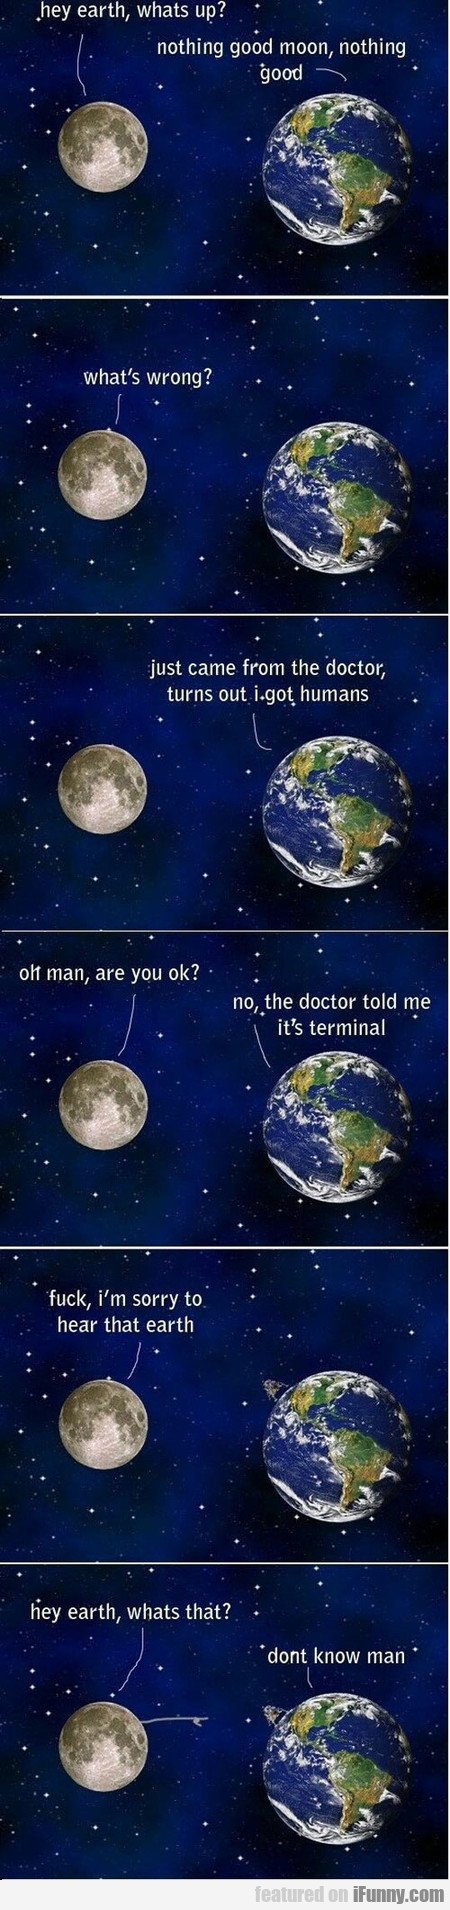 hey earth, what's up?